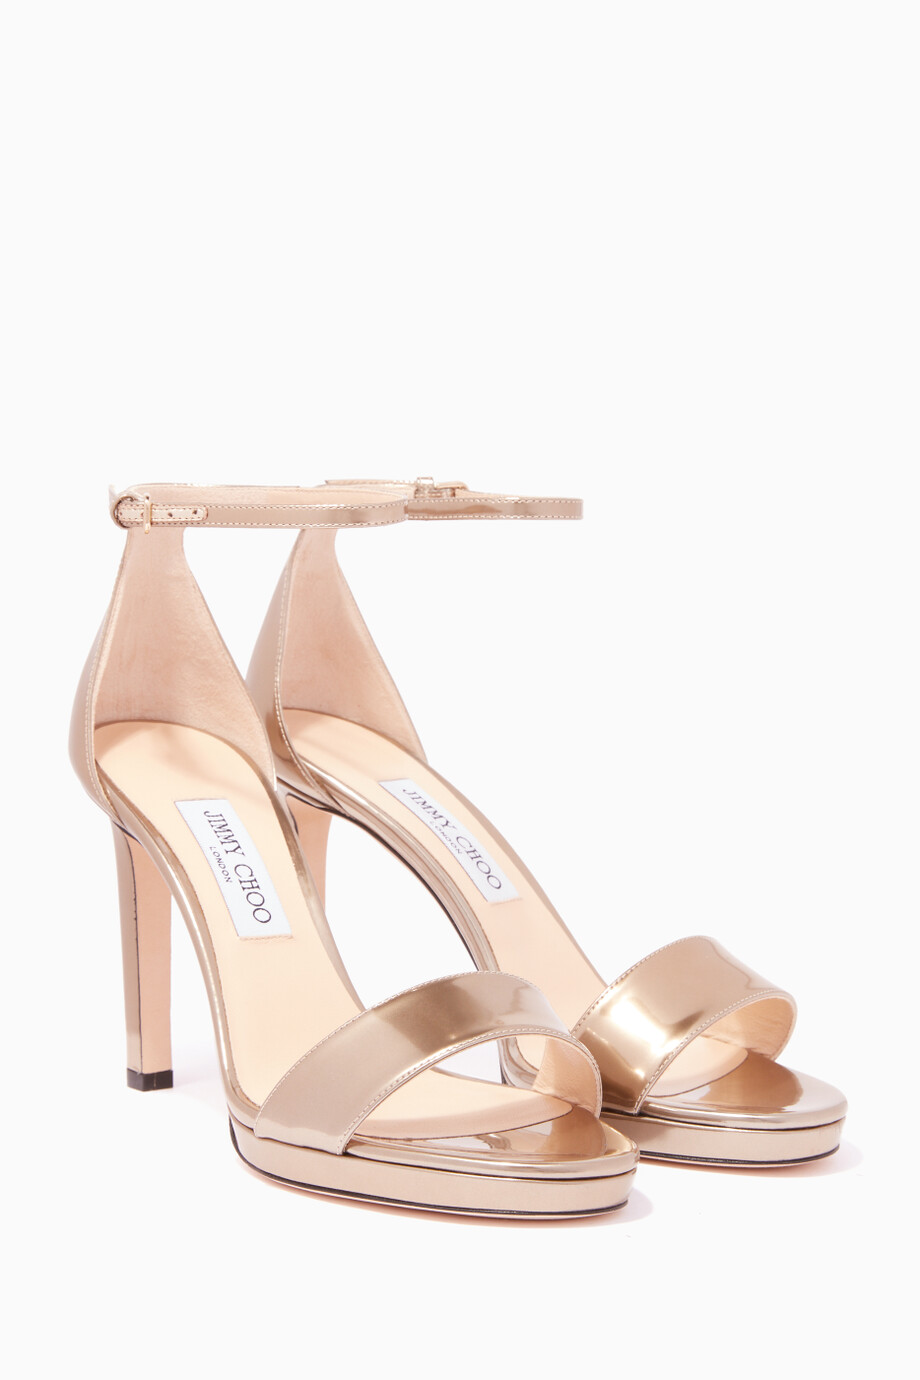 7a15b34dada Shop Jimmy Choo Gold Liquid-Gold Misty 100 Platform Sandals for ...